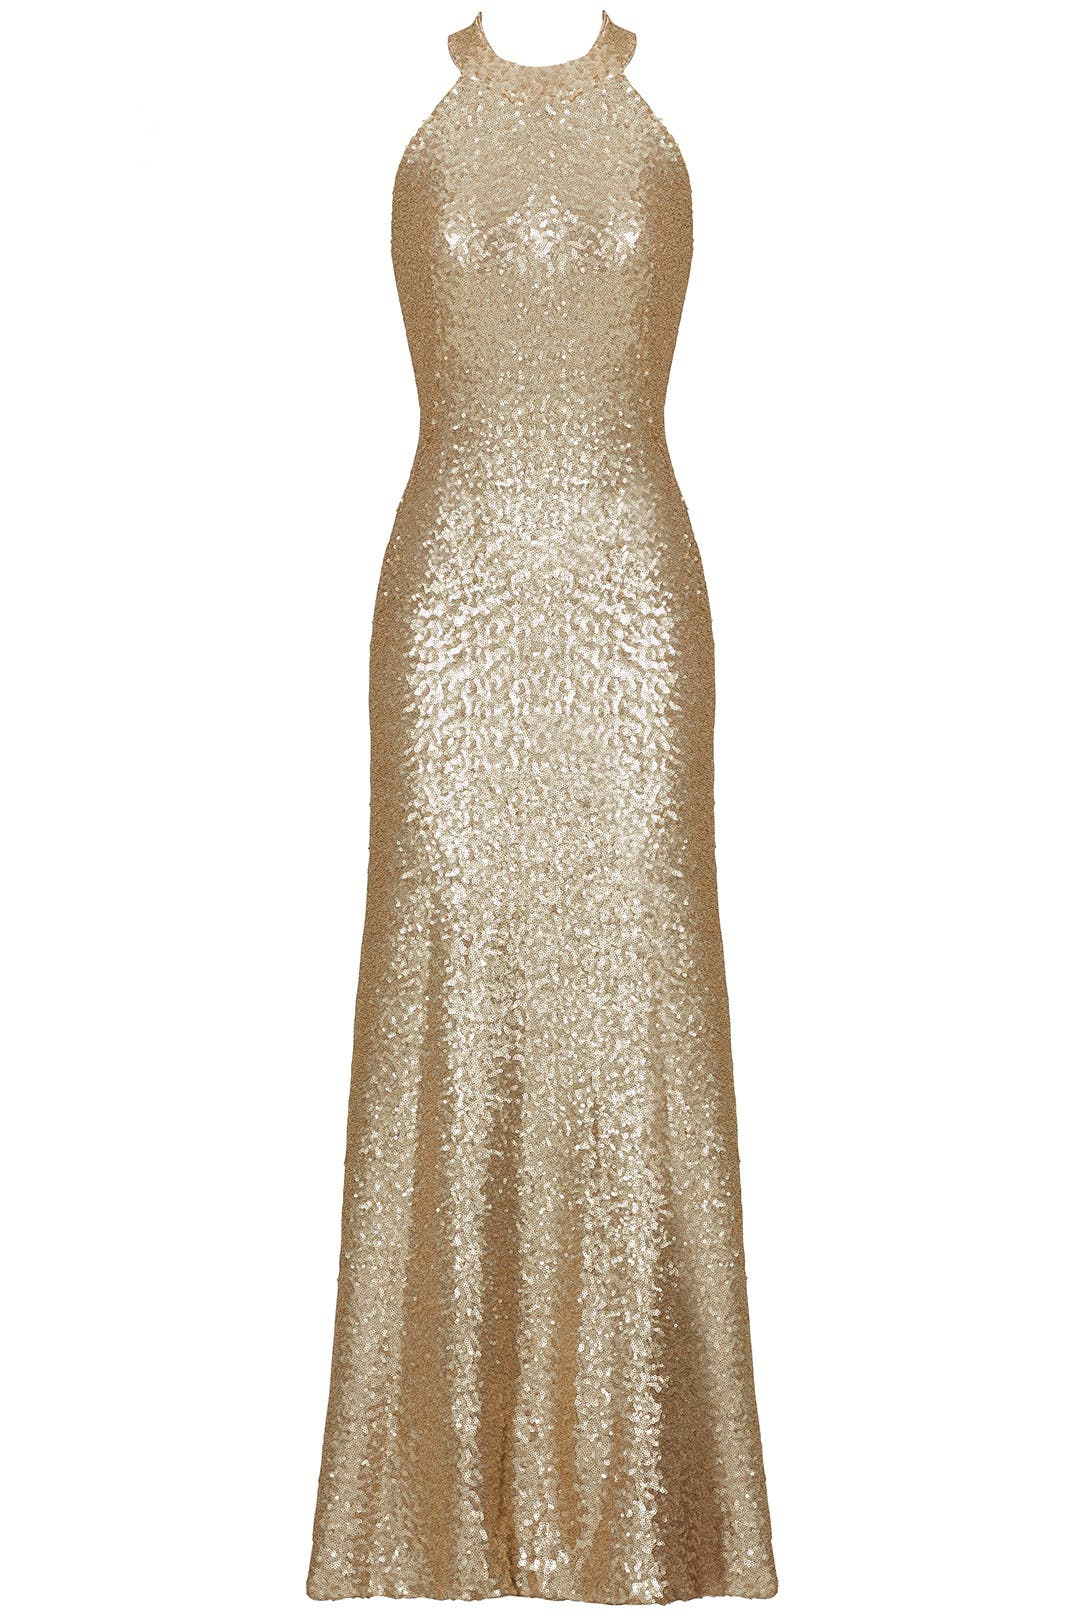 Sequin Veronica Gown by Slate & Willow for $70 - $90 | Rent the Runway